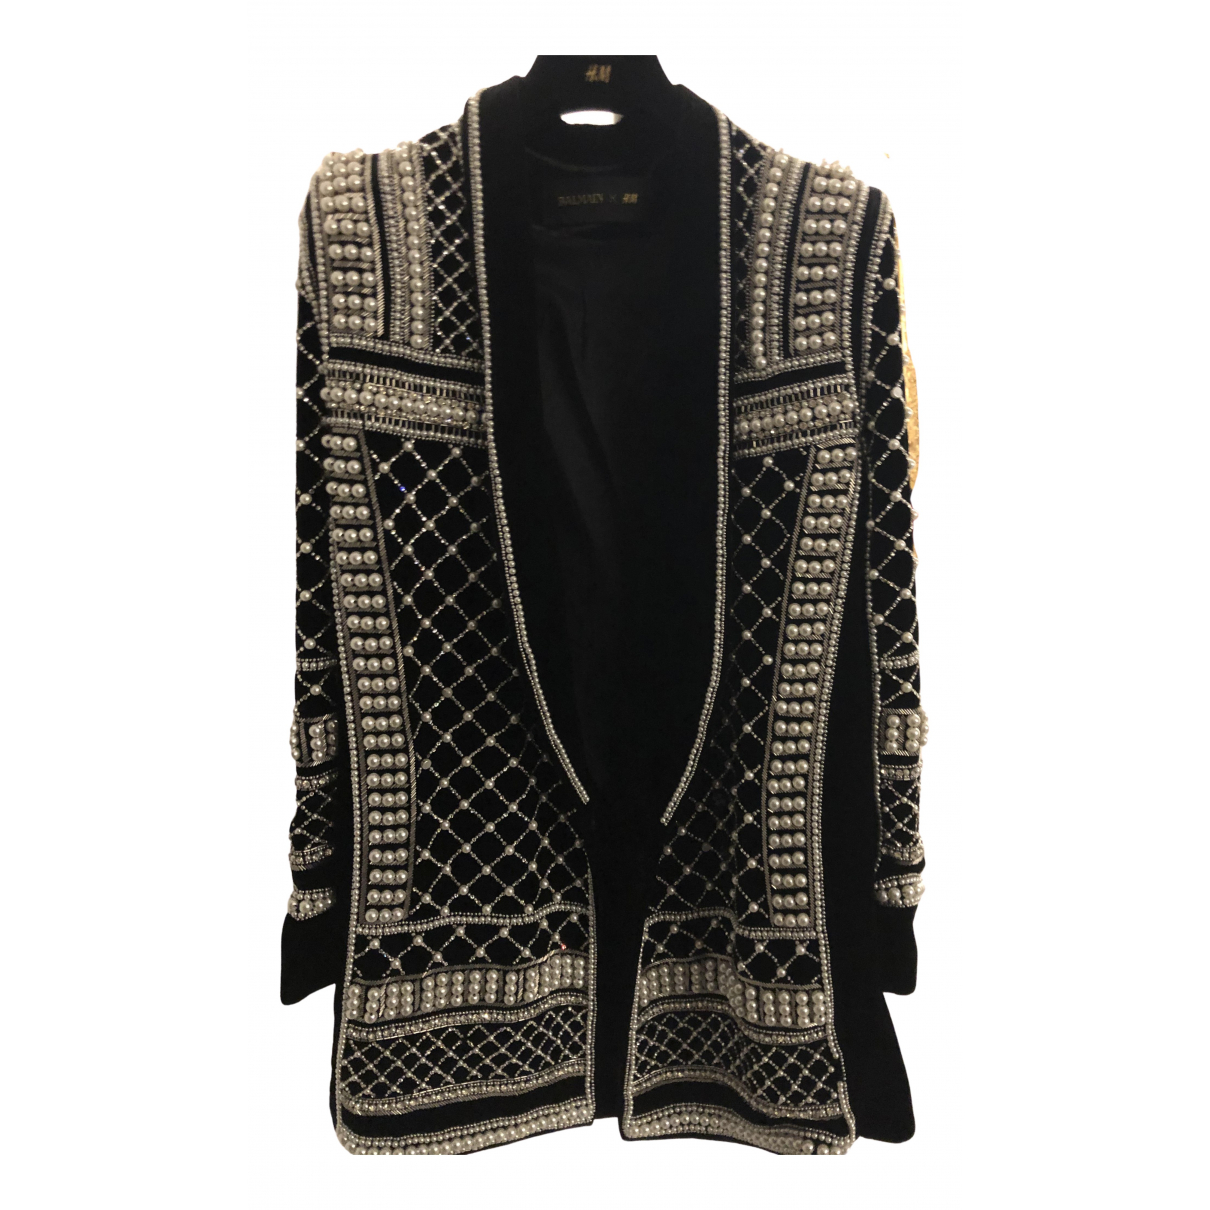 Balmain For H&m \N Jacke in Samt